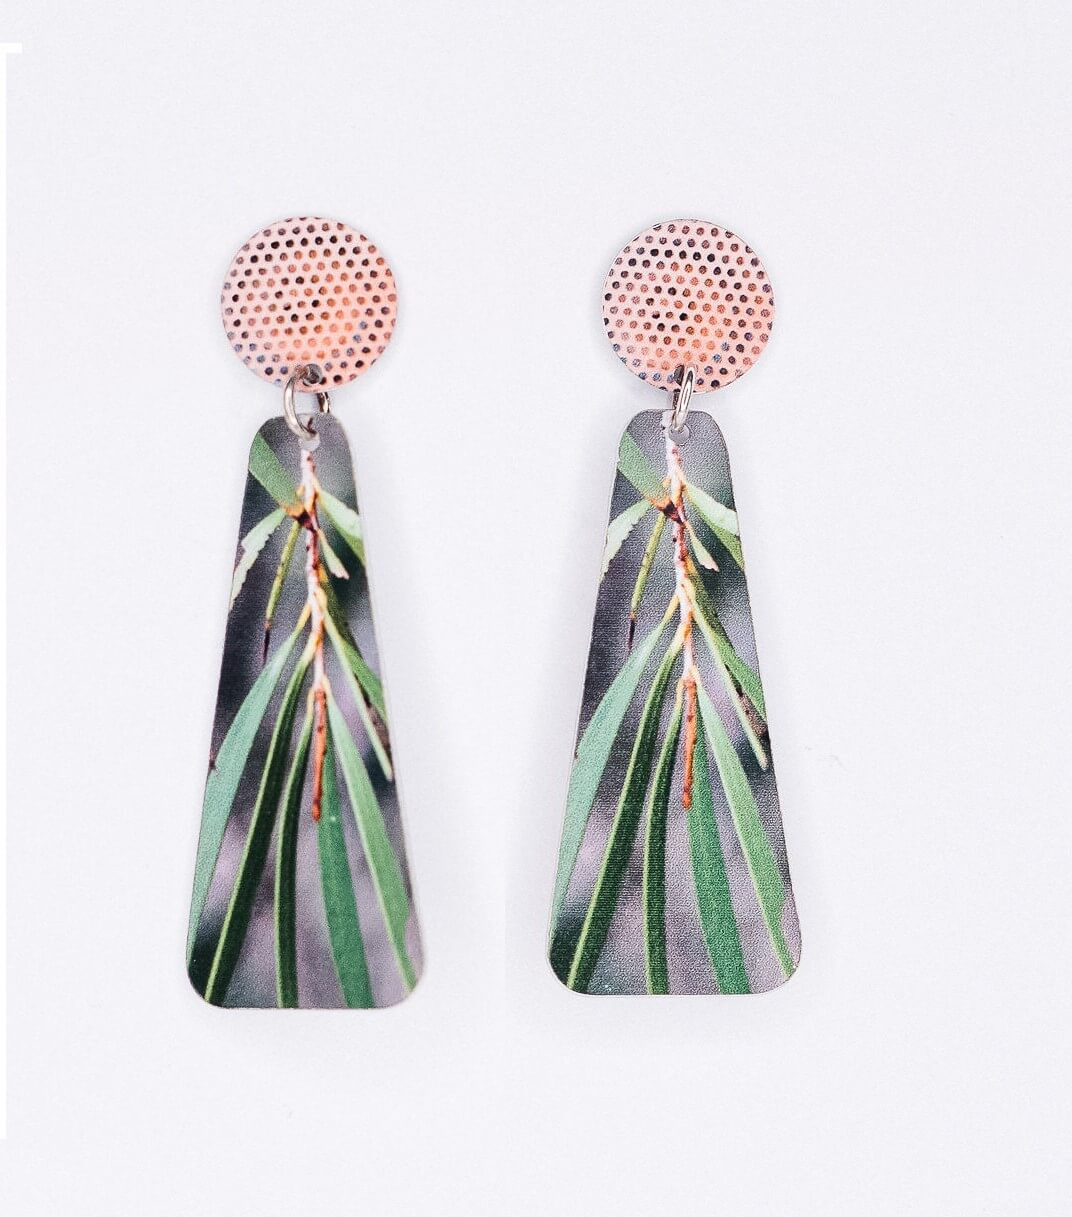 gum leaf photo statement earrings